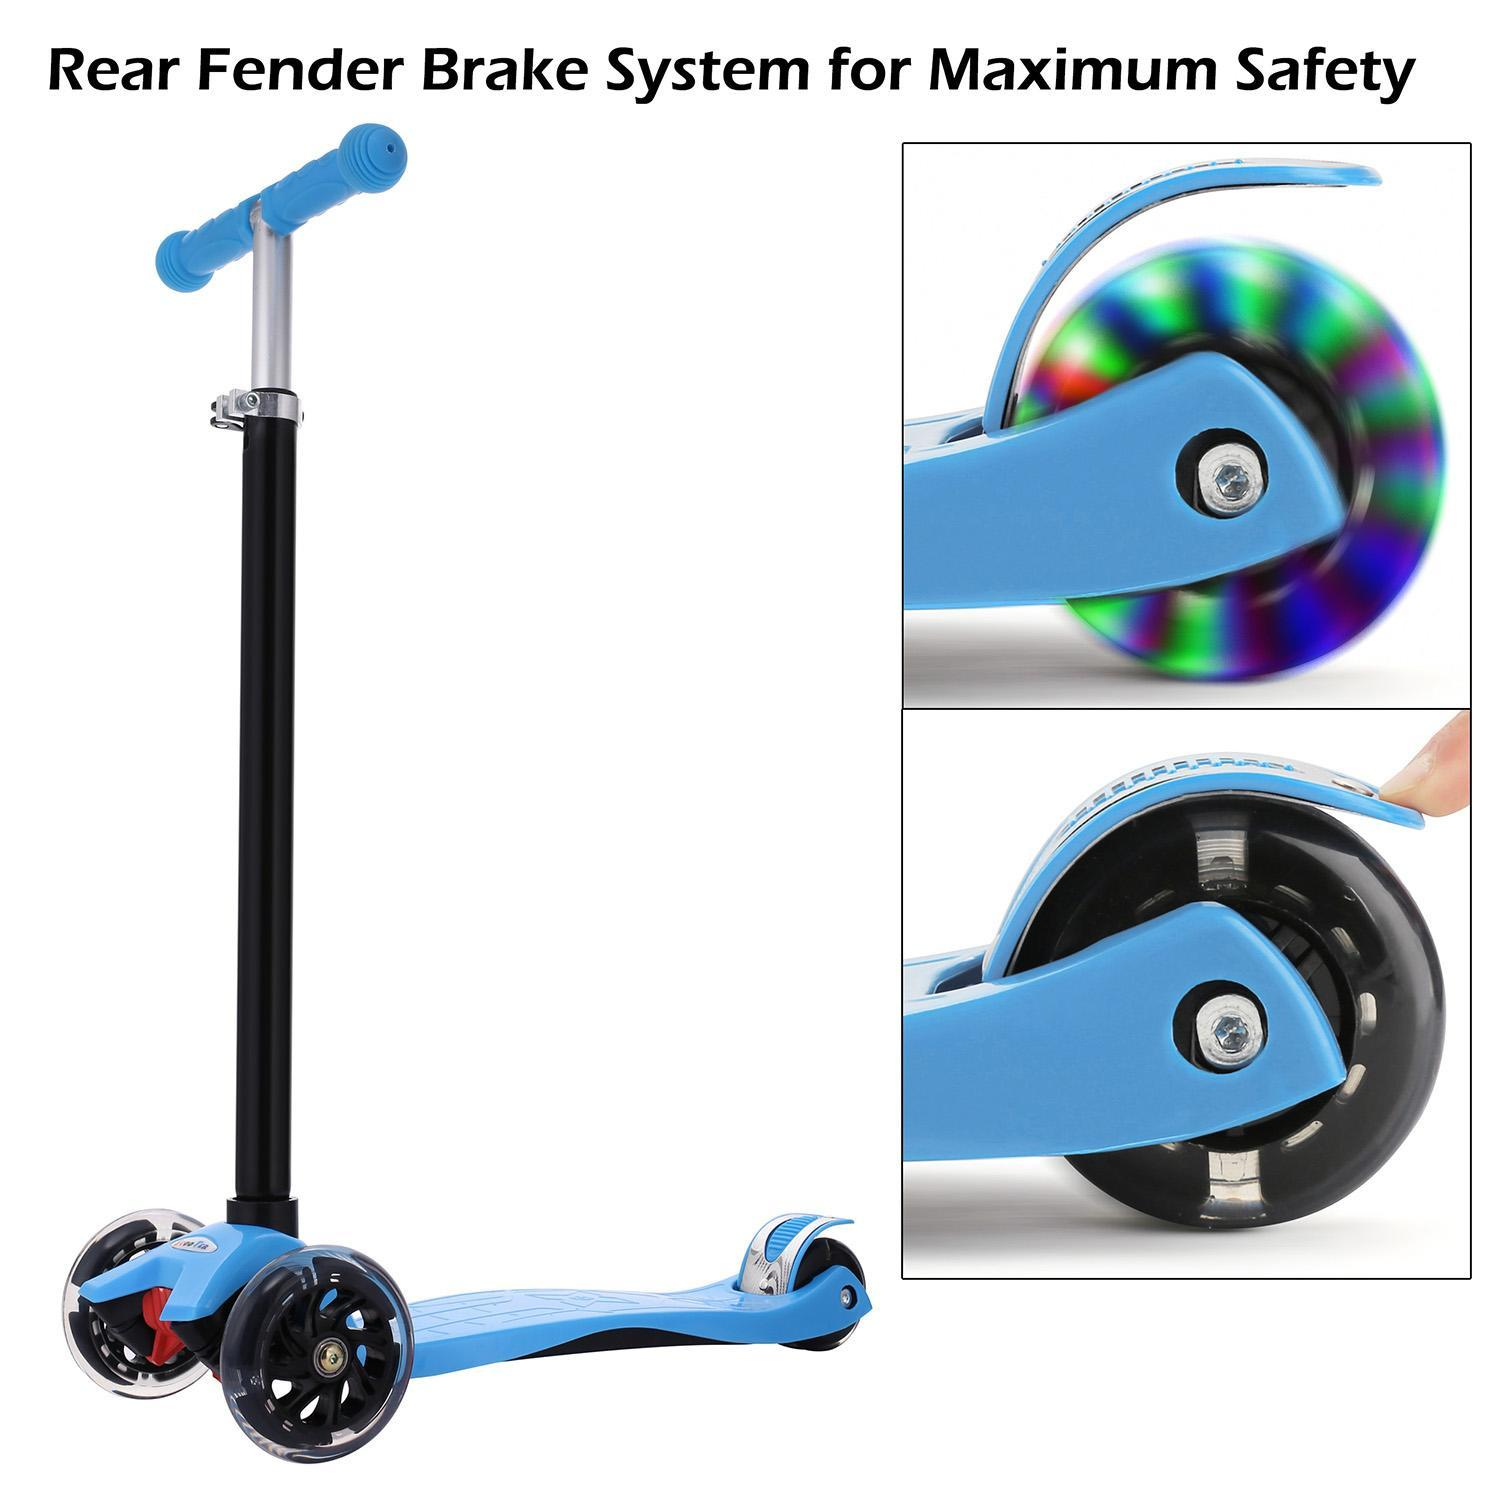 3 Wheel Kick Scooter for Kids Boys Girls Adjustable Height Aluminum Alloy